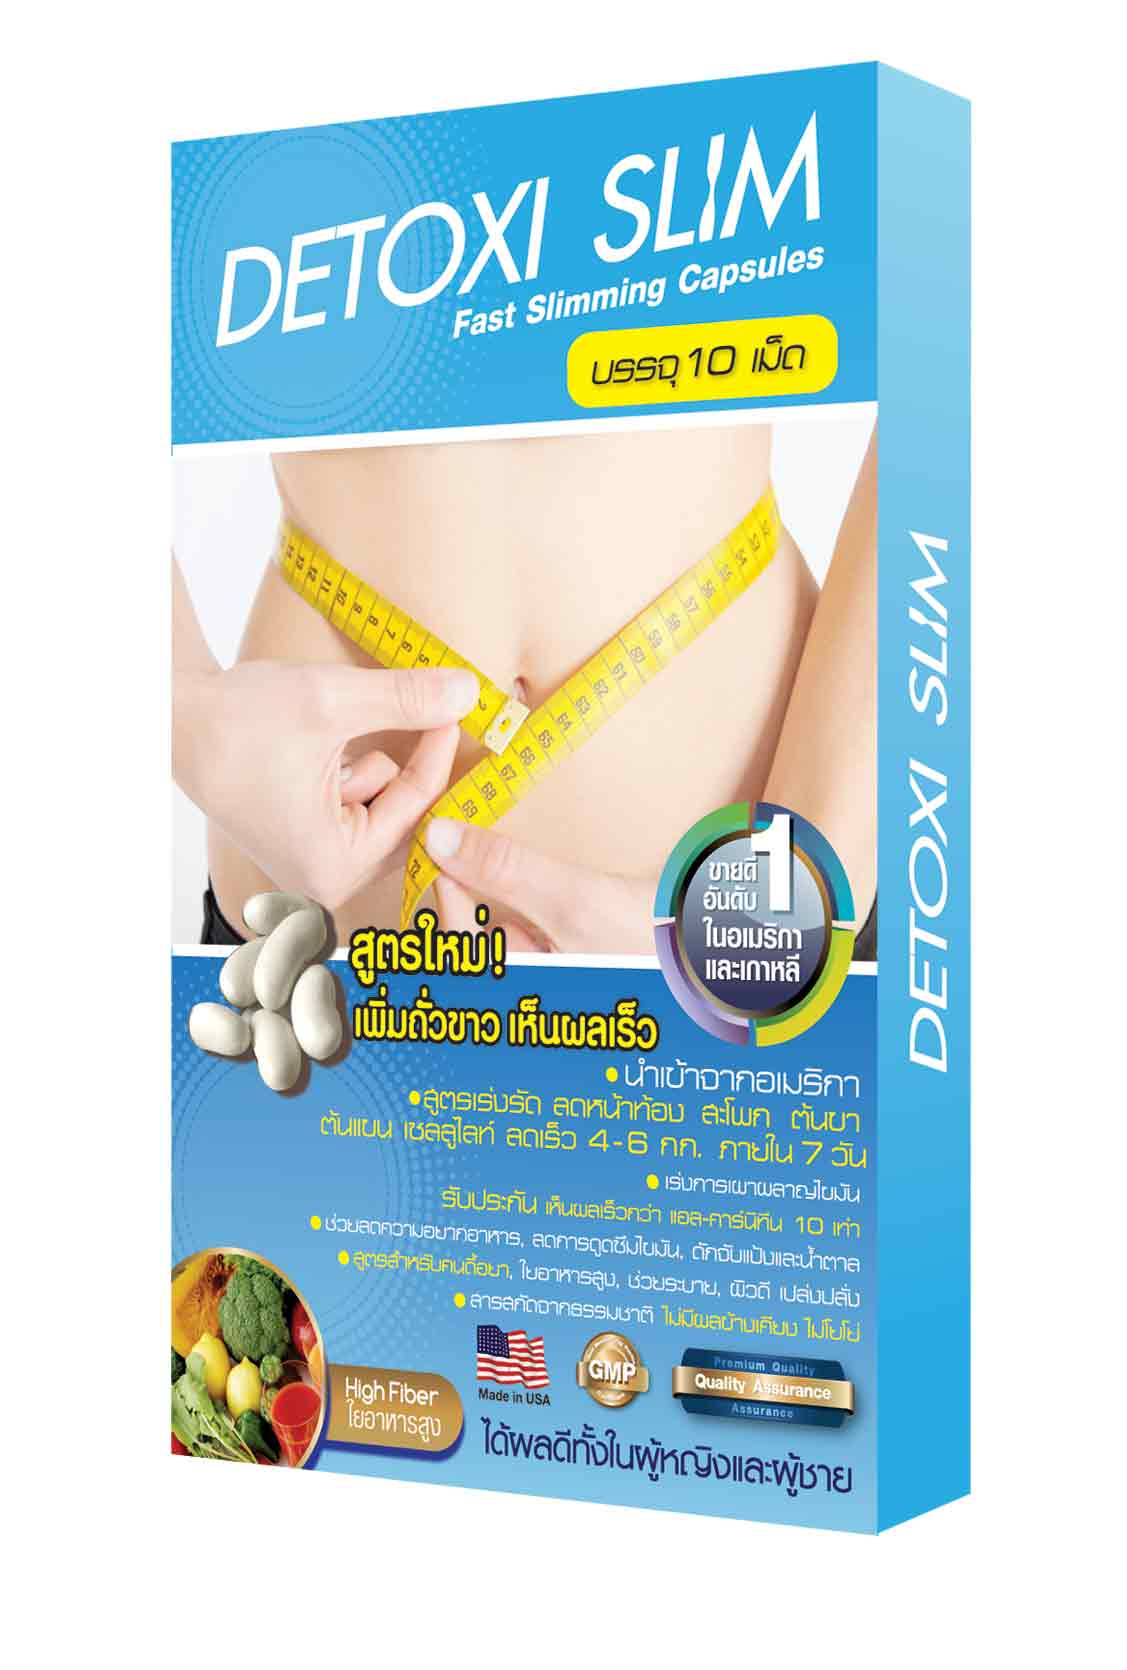 Detoxi Slim Fast Slimming Capsules Weight Loss Supplements